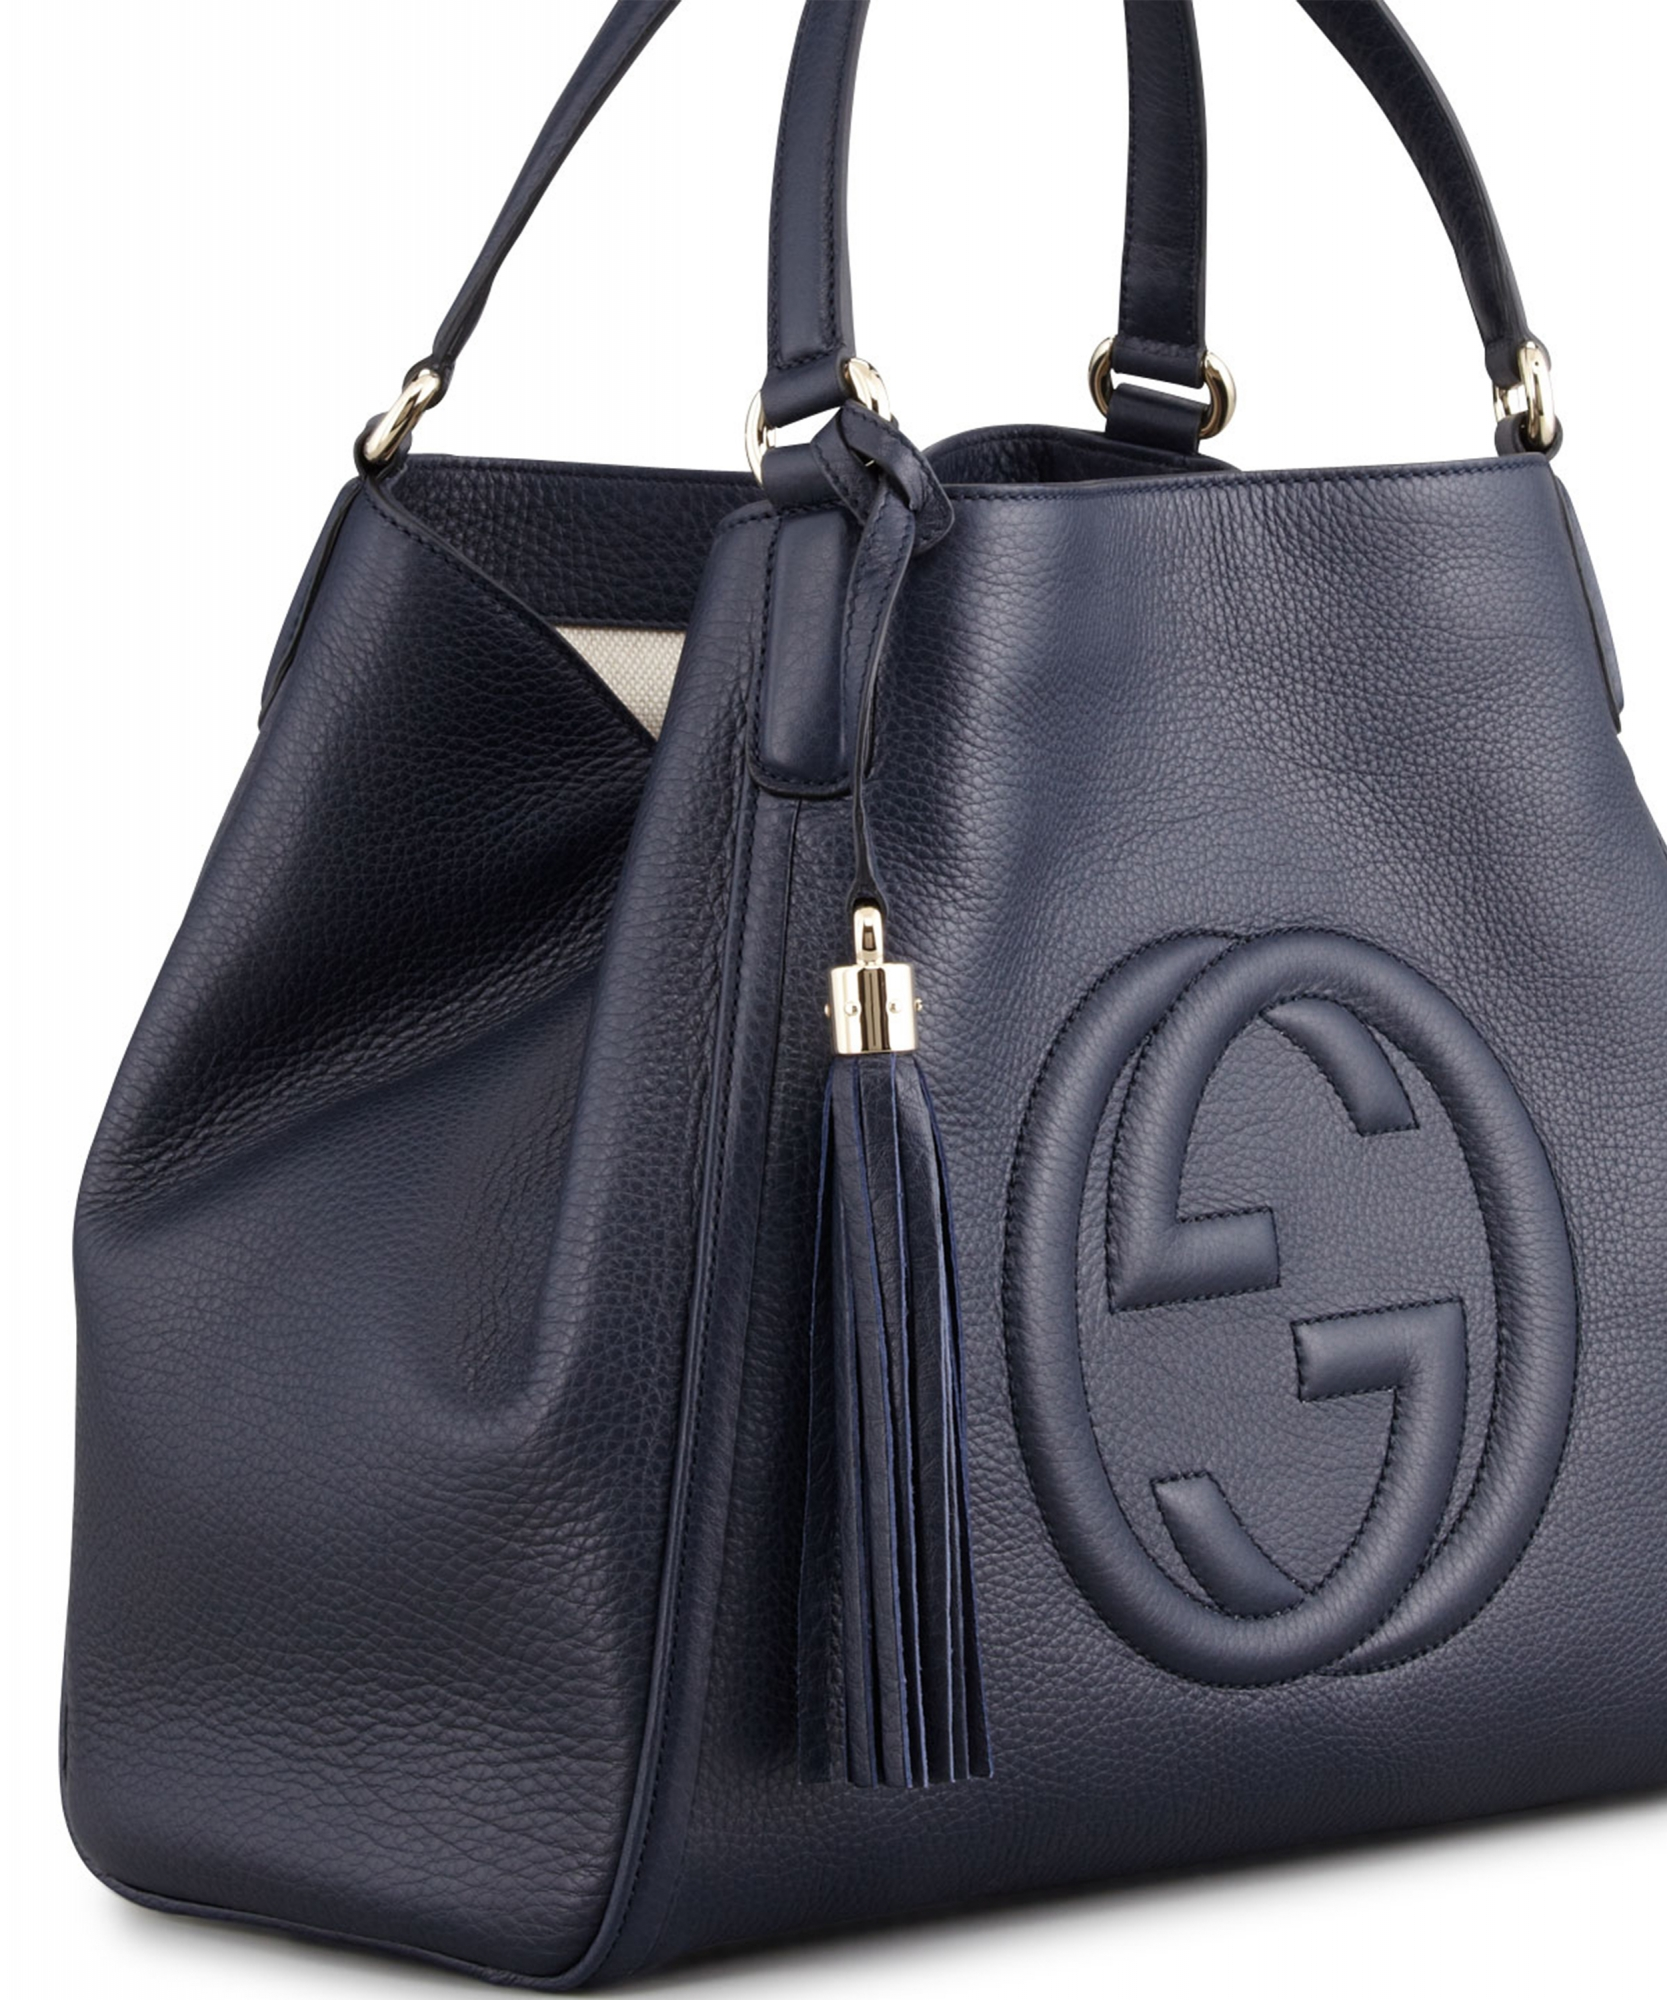 c7859ba71b4 Gucci Navy Blue Soho Leather Shoulder Bag Large